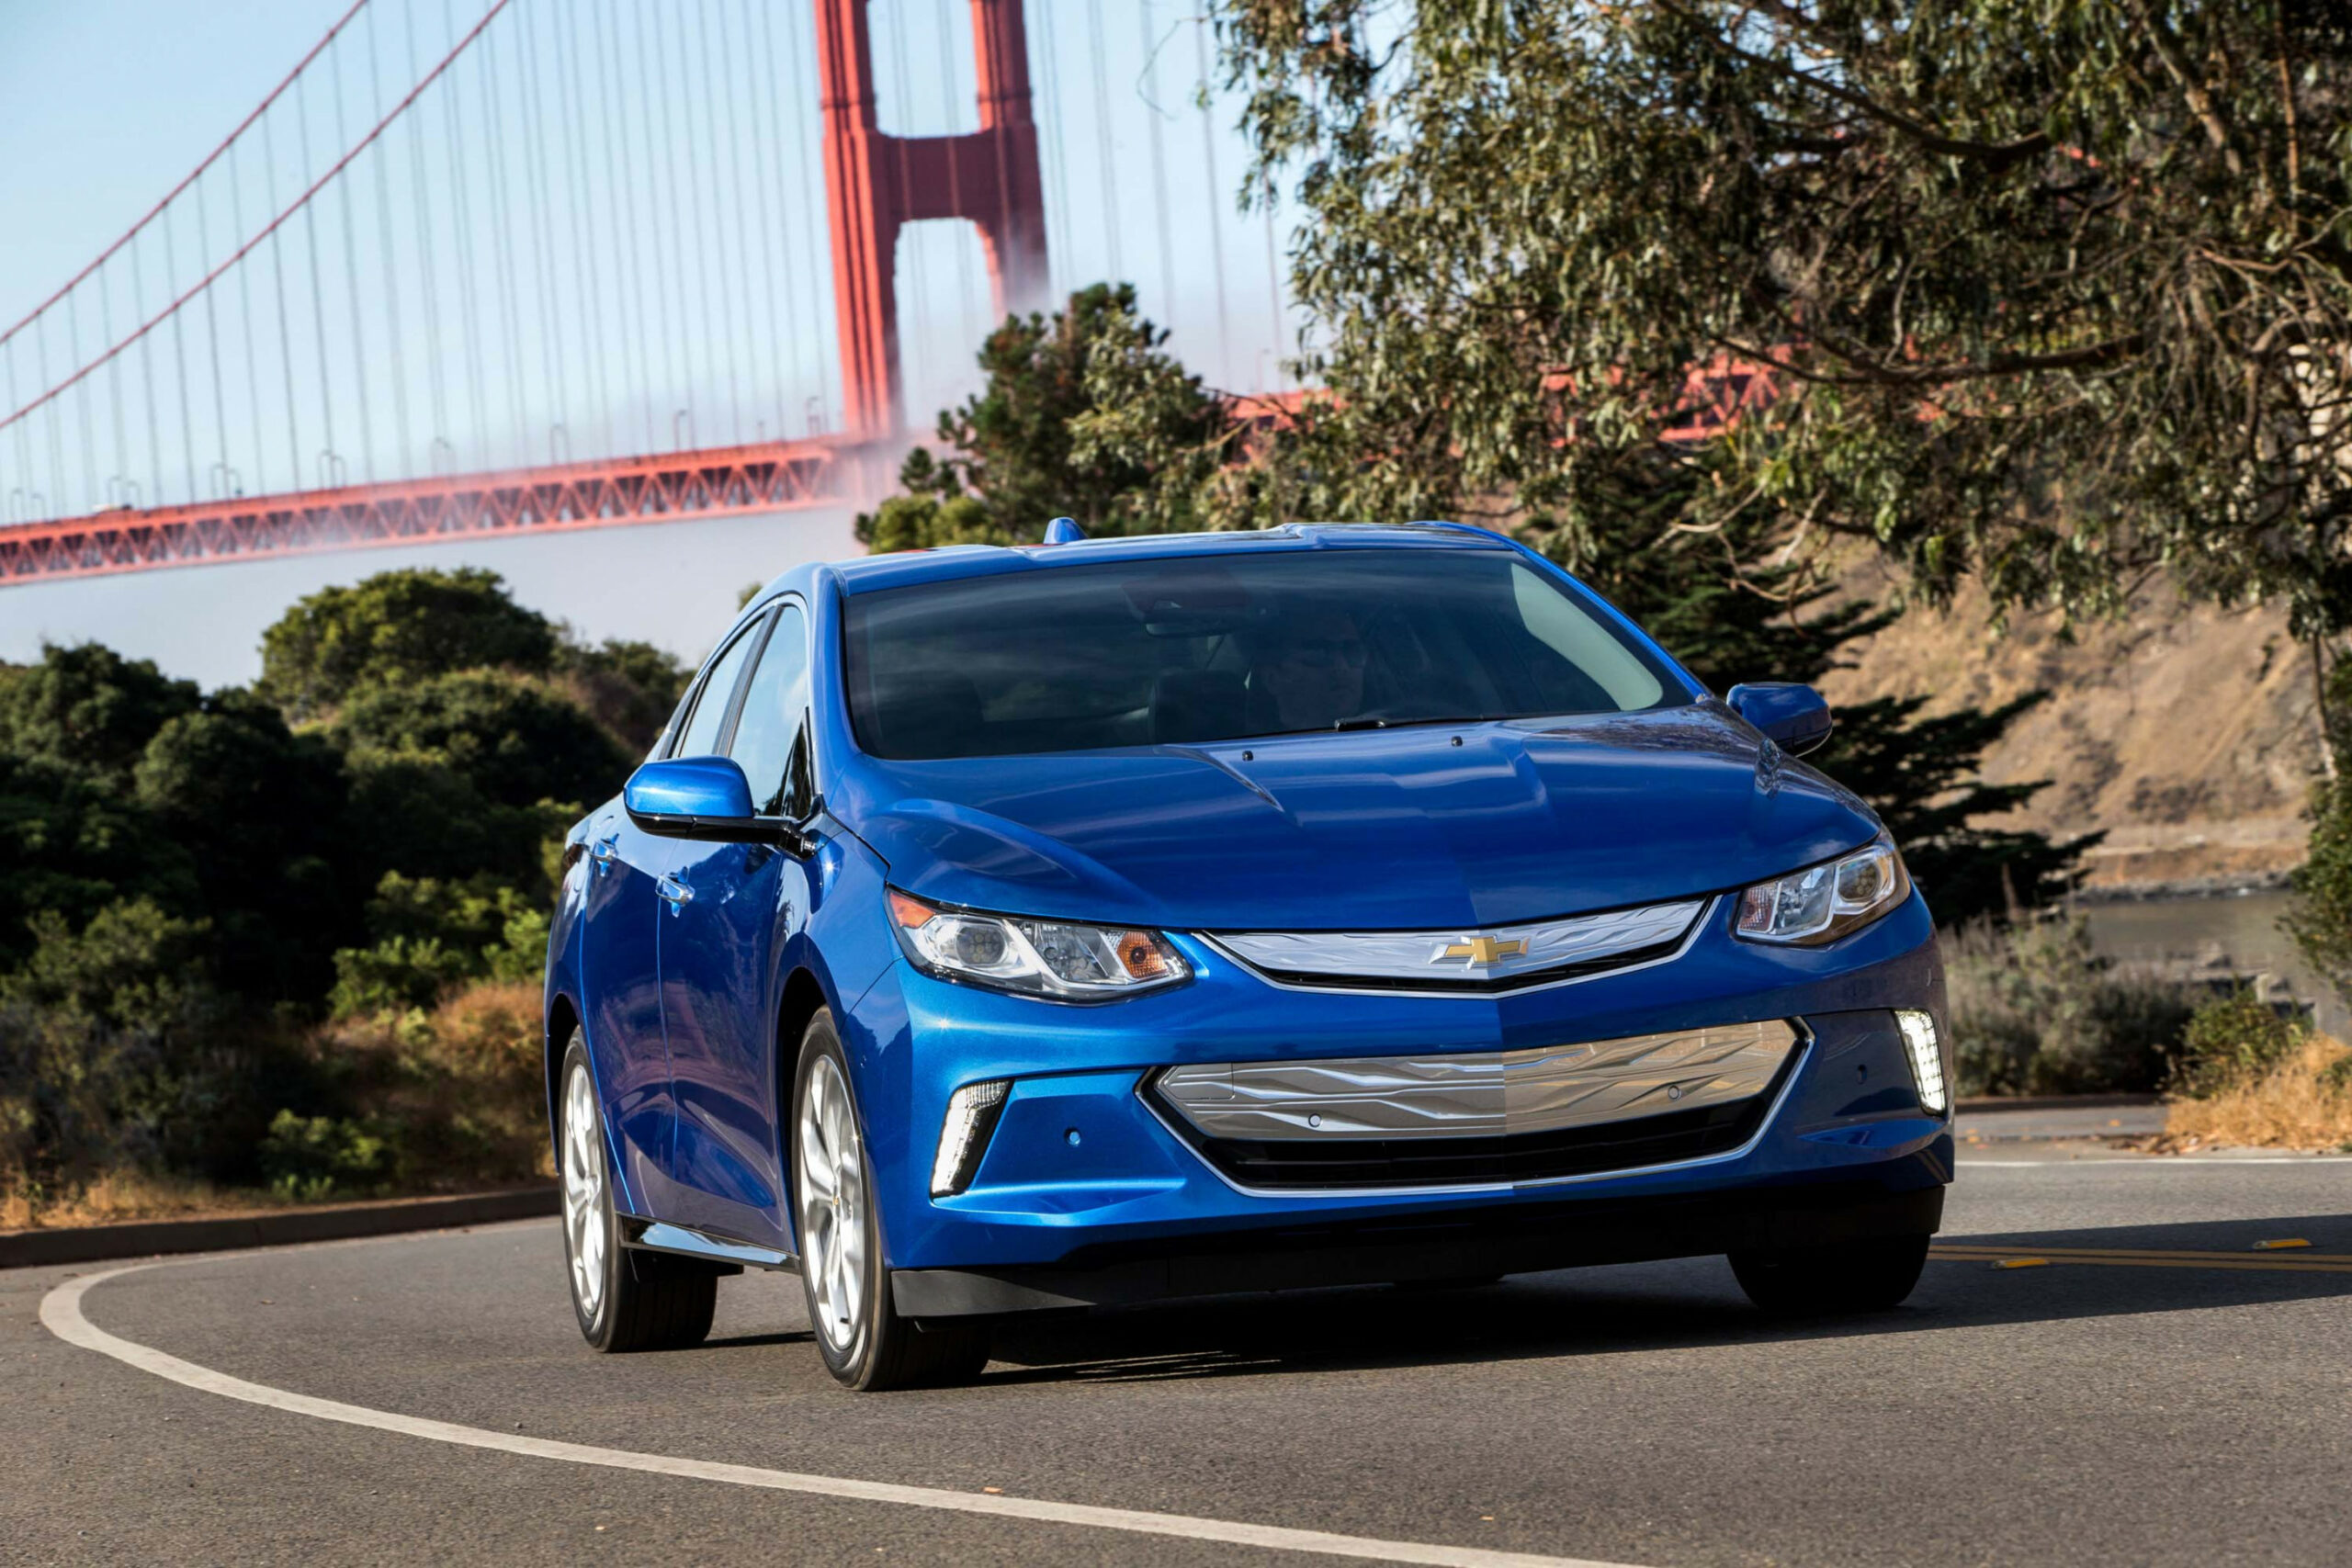 Big deals arrive on 12 Chevy Volt: Get one while you can - chevrolet zero percent financing 2020